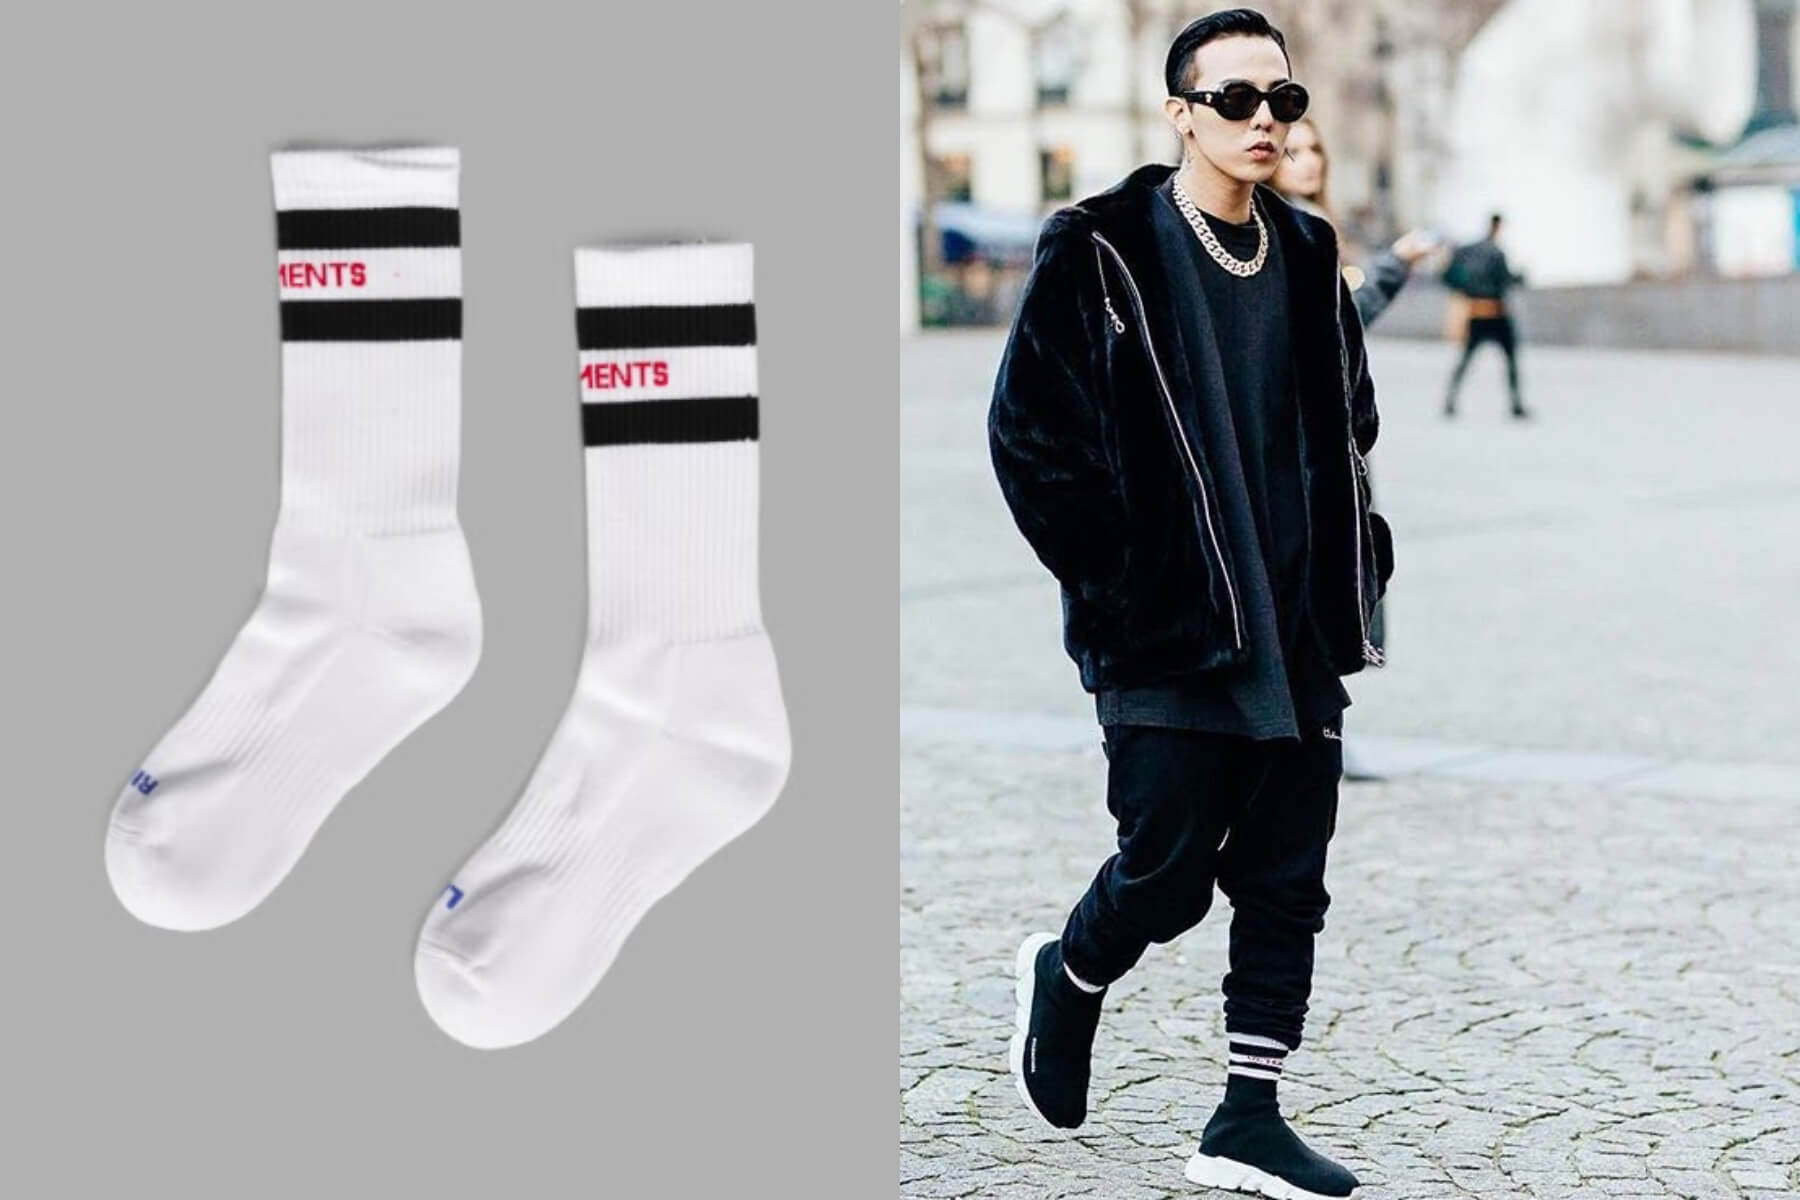 G-Dragon BIGBANG – Vetemen Socks ($85 USD)